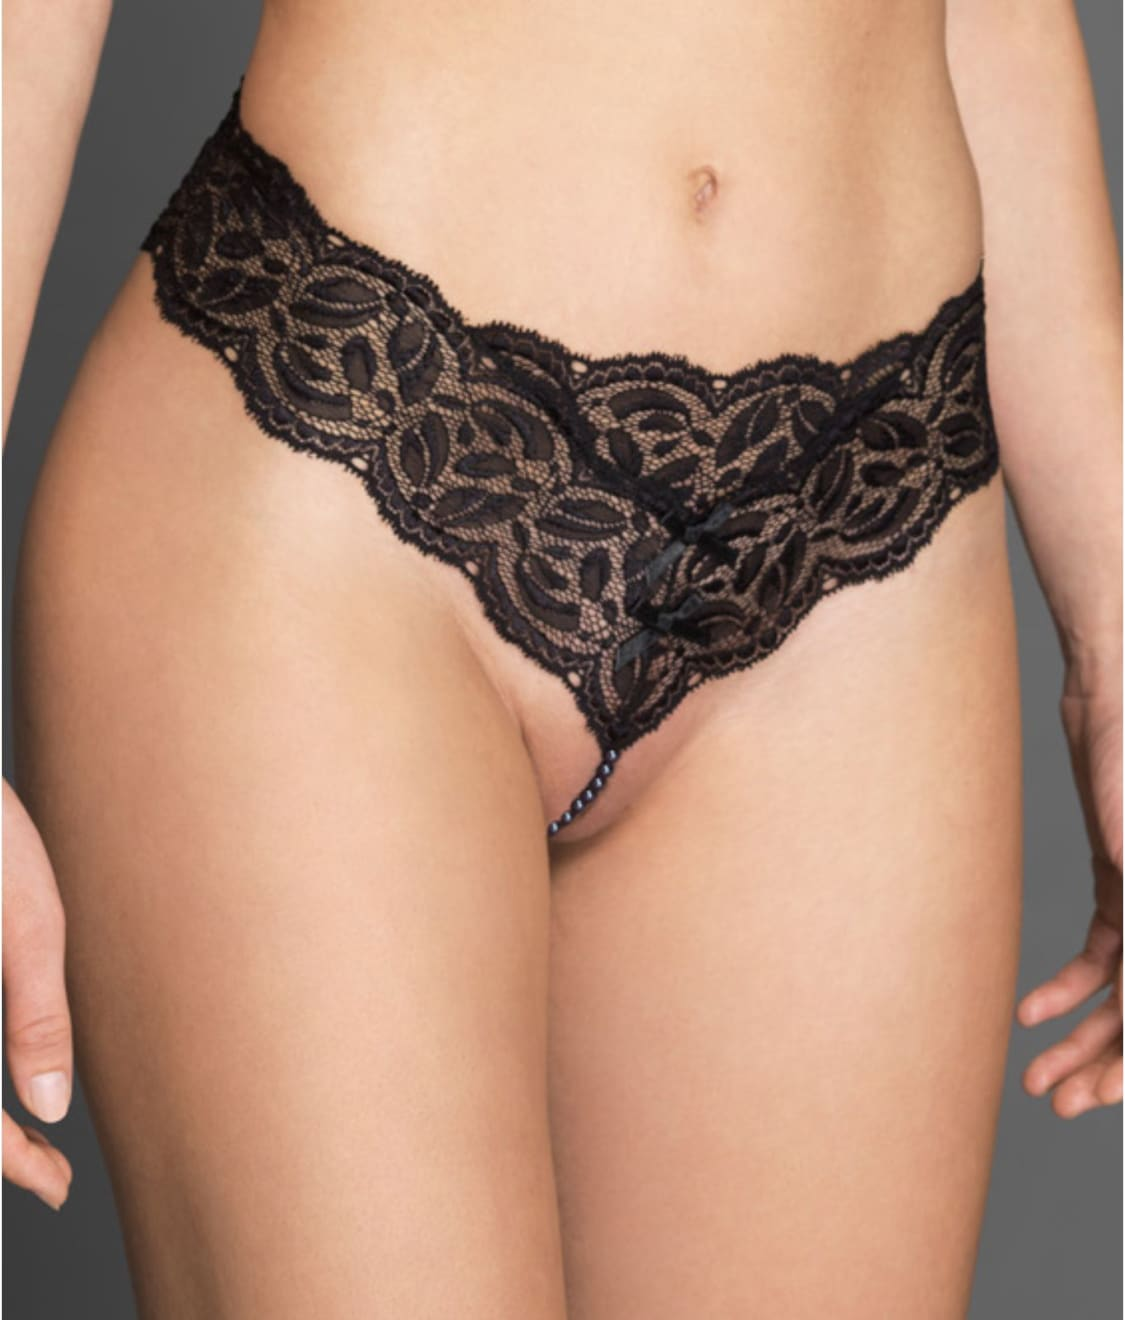 bf069fa6542a Bracli Paris Collection Pearl Thong